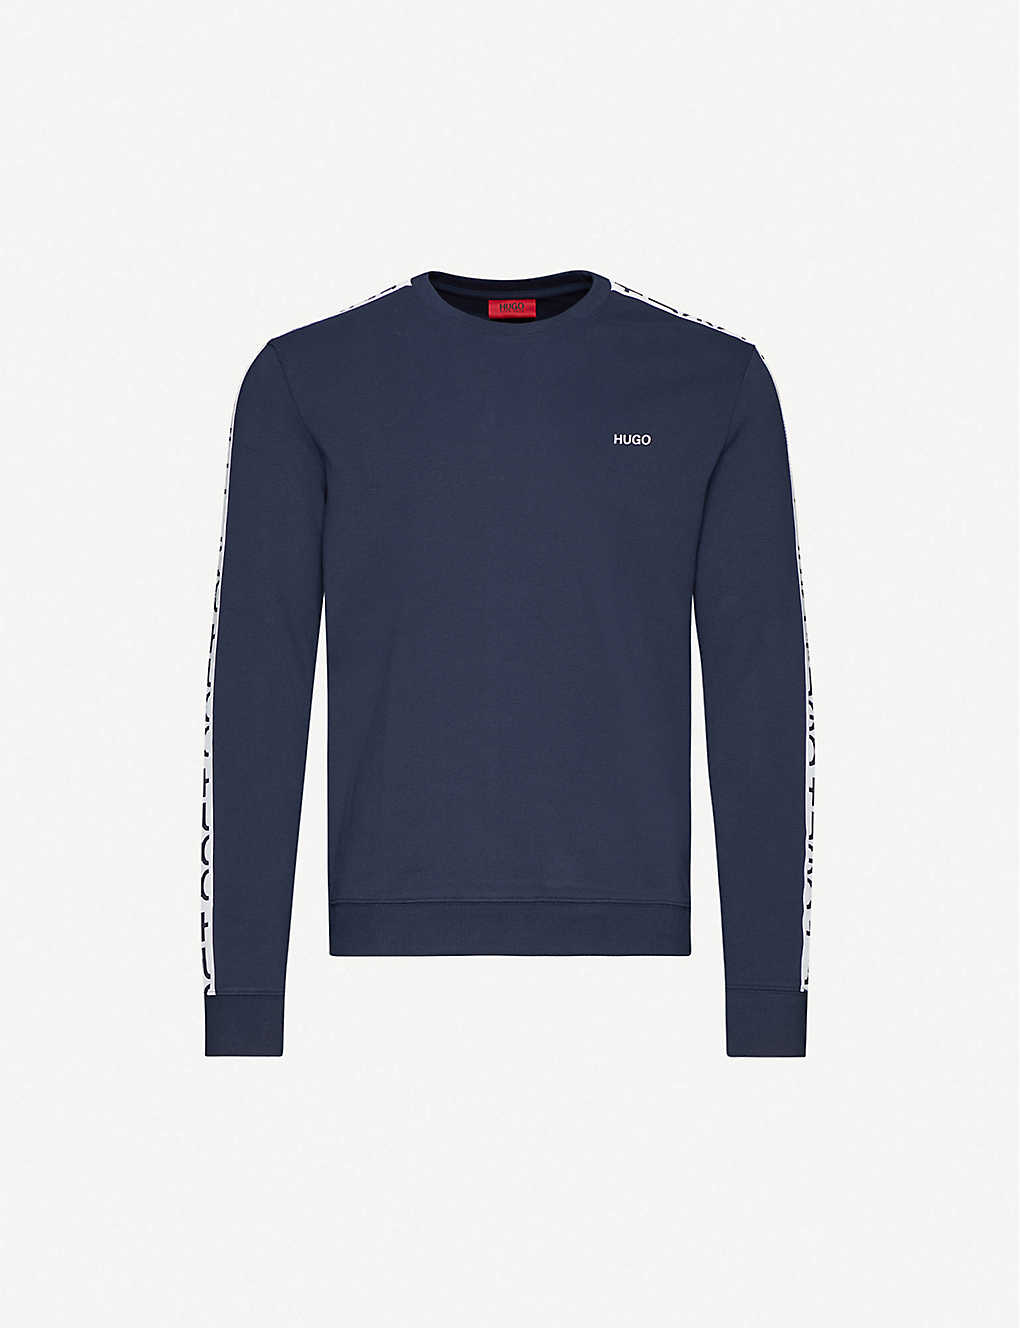 HUGO: Logo-print cotton-jersey sweatshirt